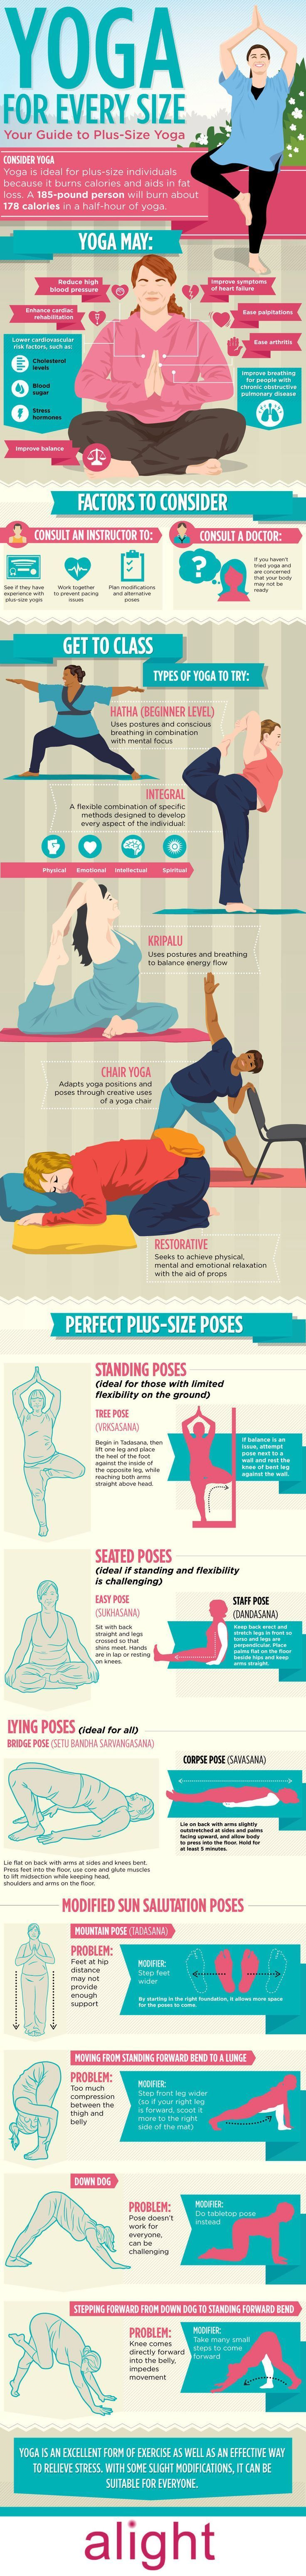 Yoga For Every Size: A Guide To Plus-Size Yoga Pictures, Photos, and Images for ...